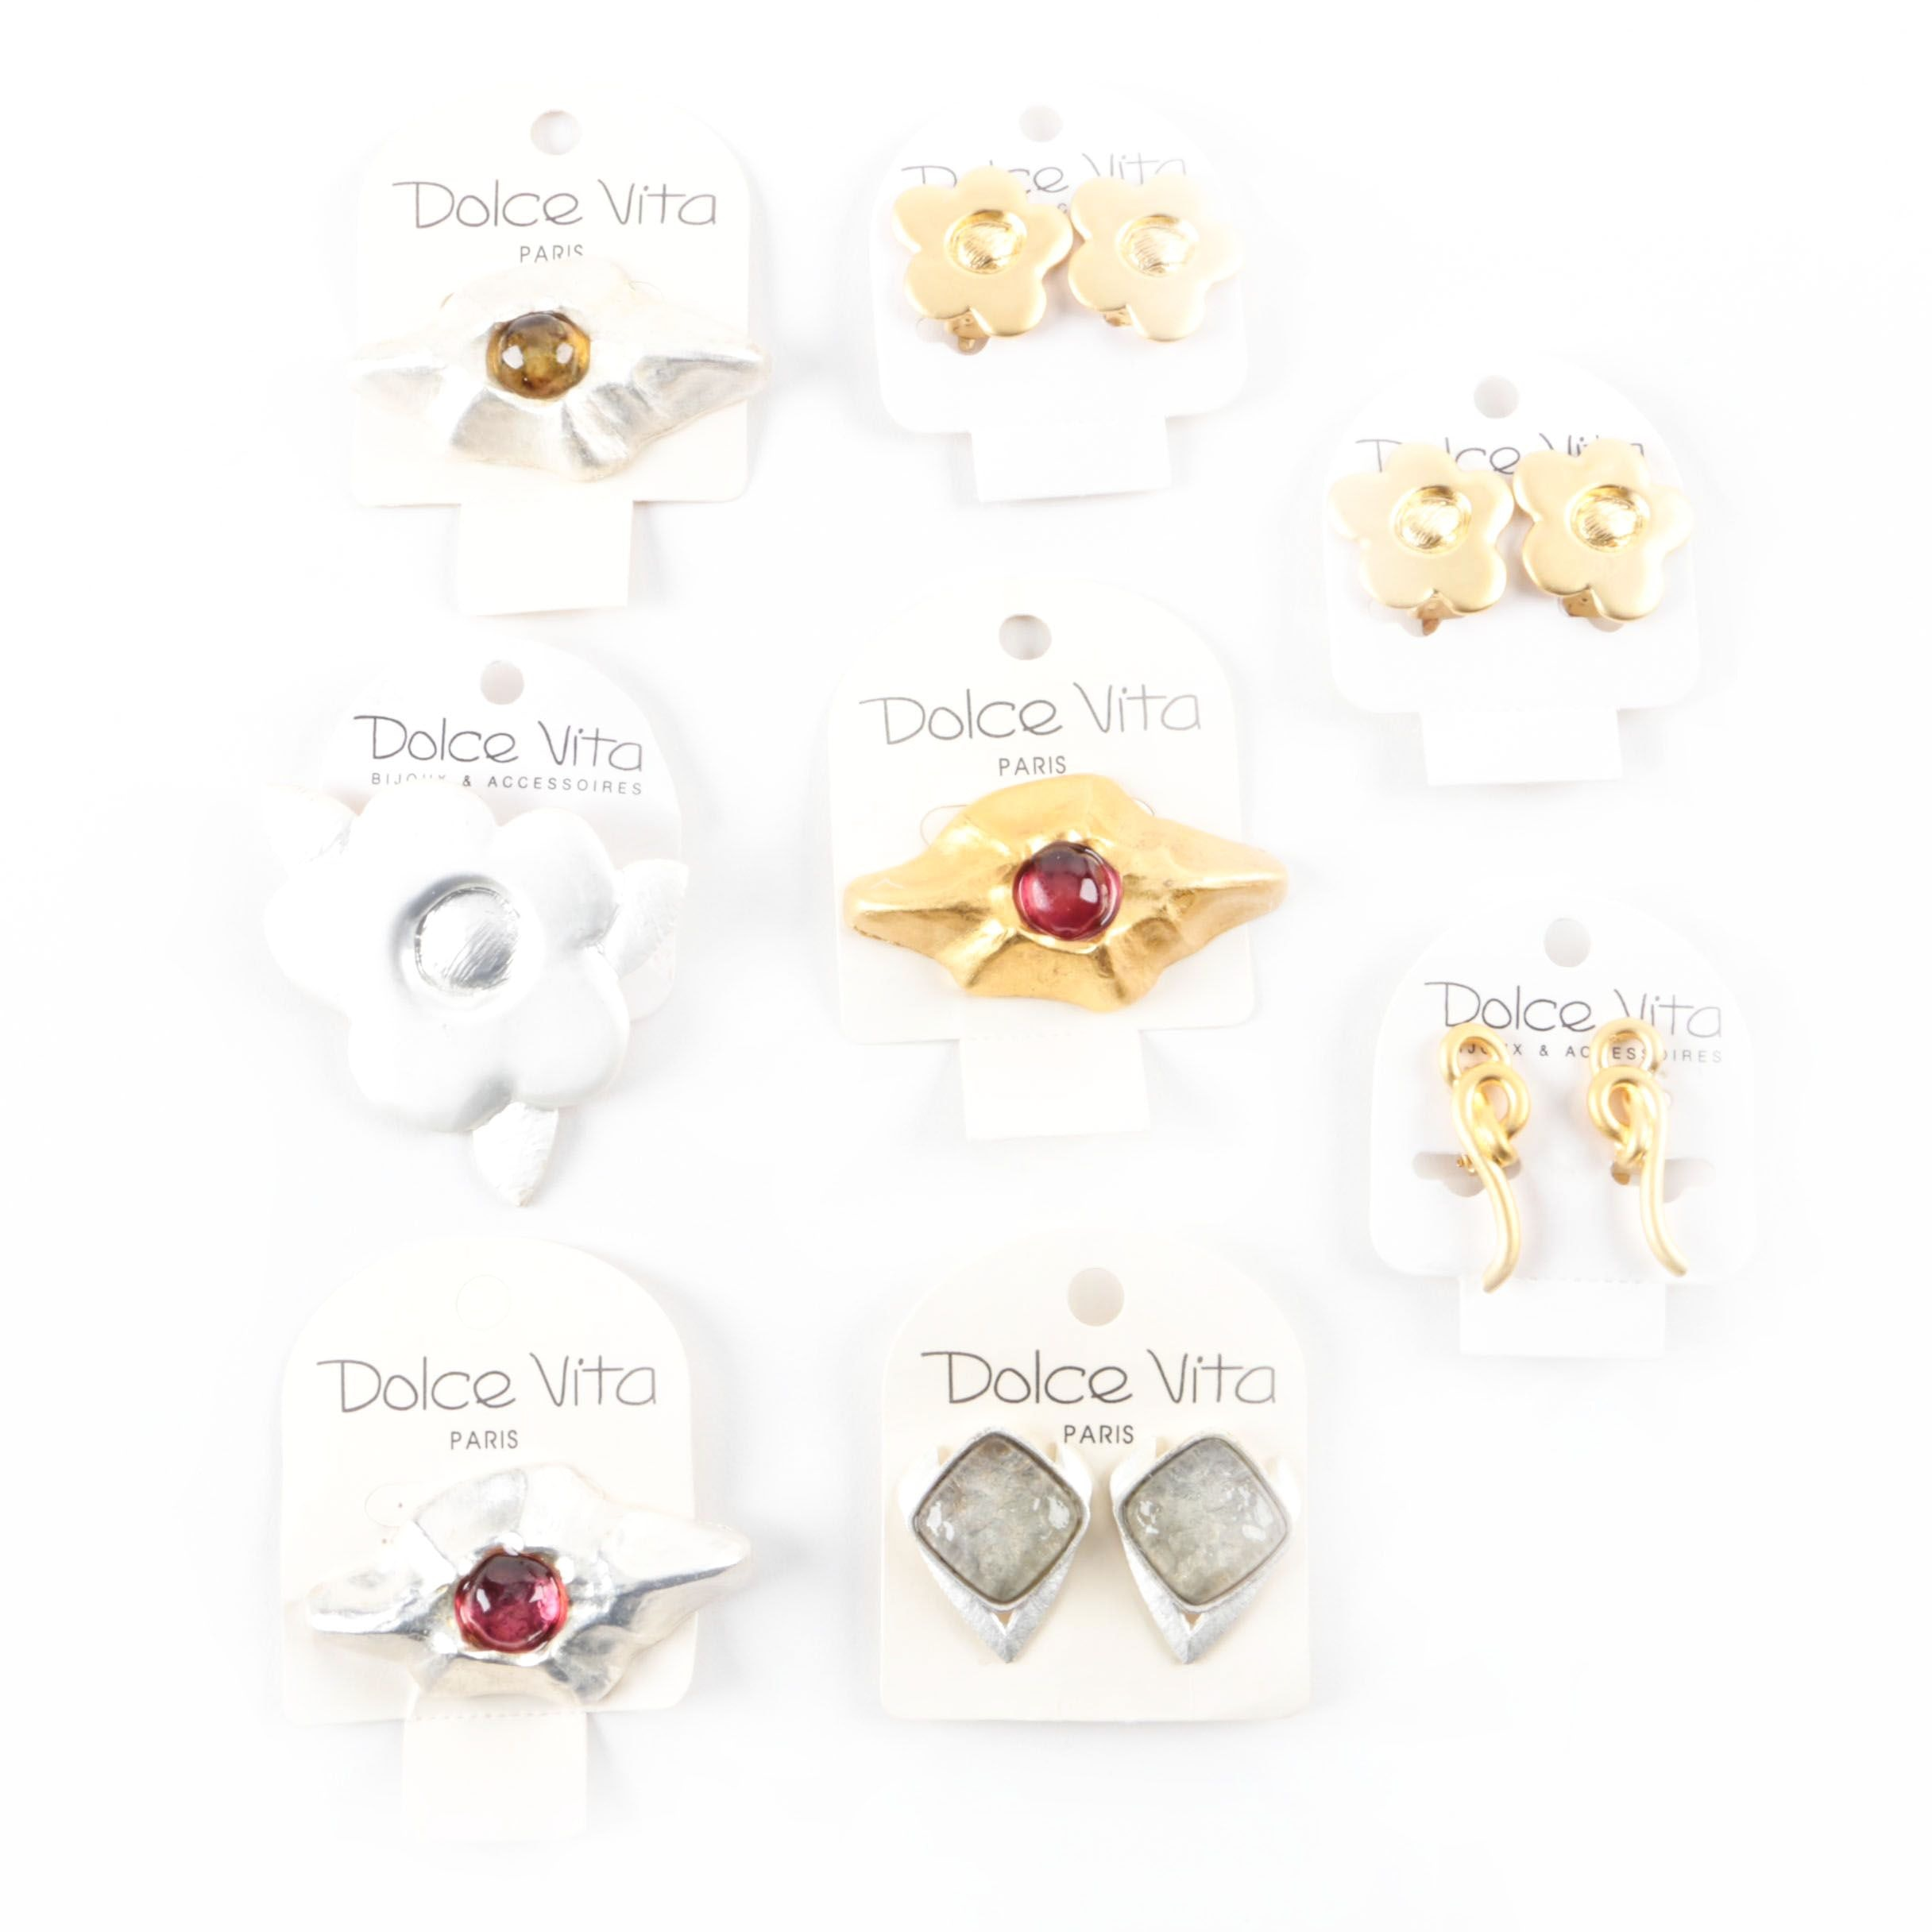 Dolce Vita Brooch and Earring Assortment